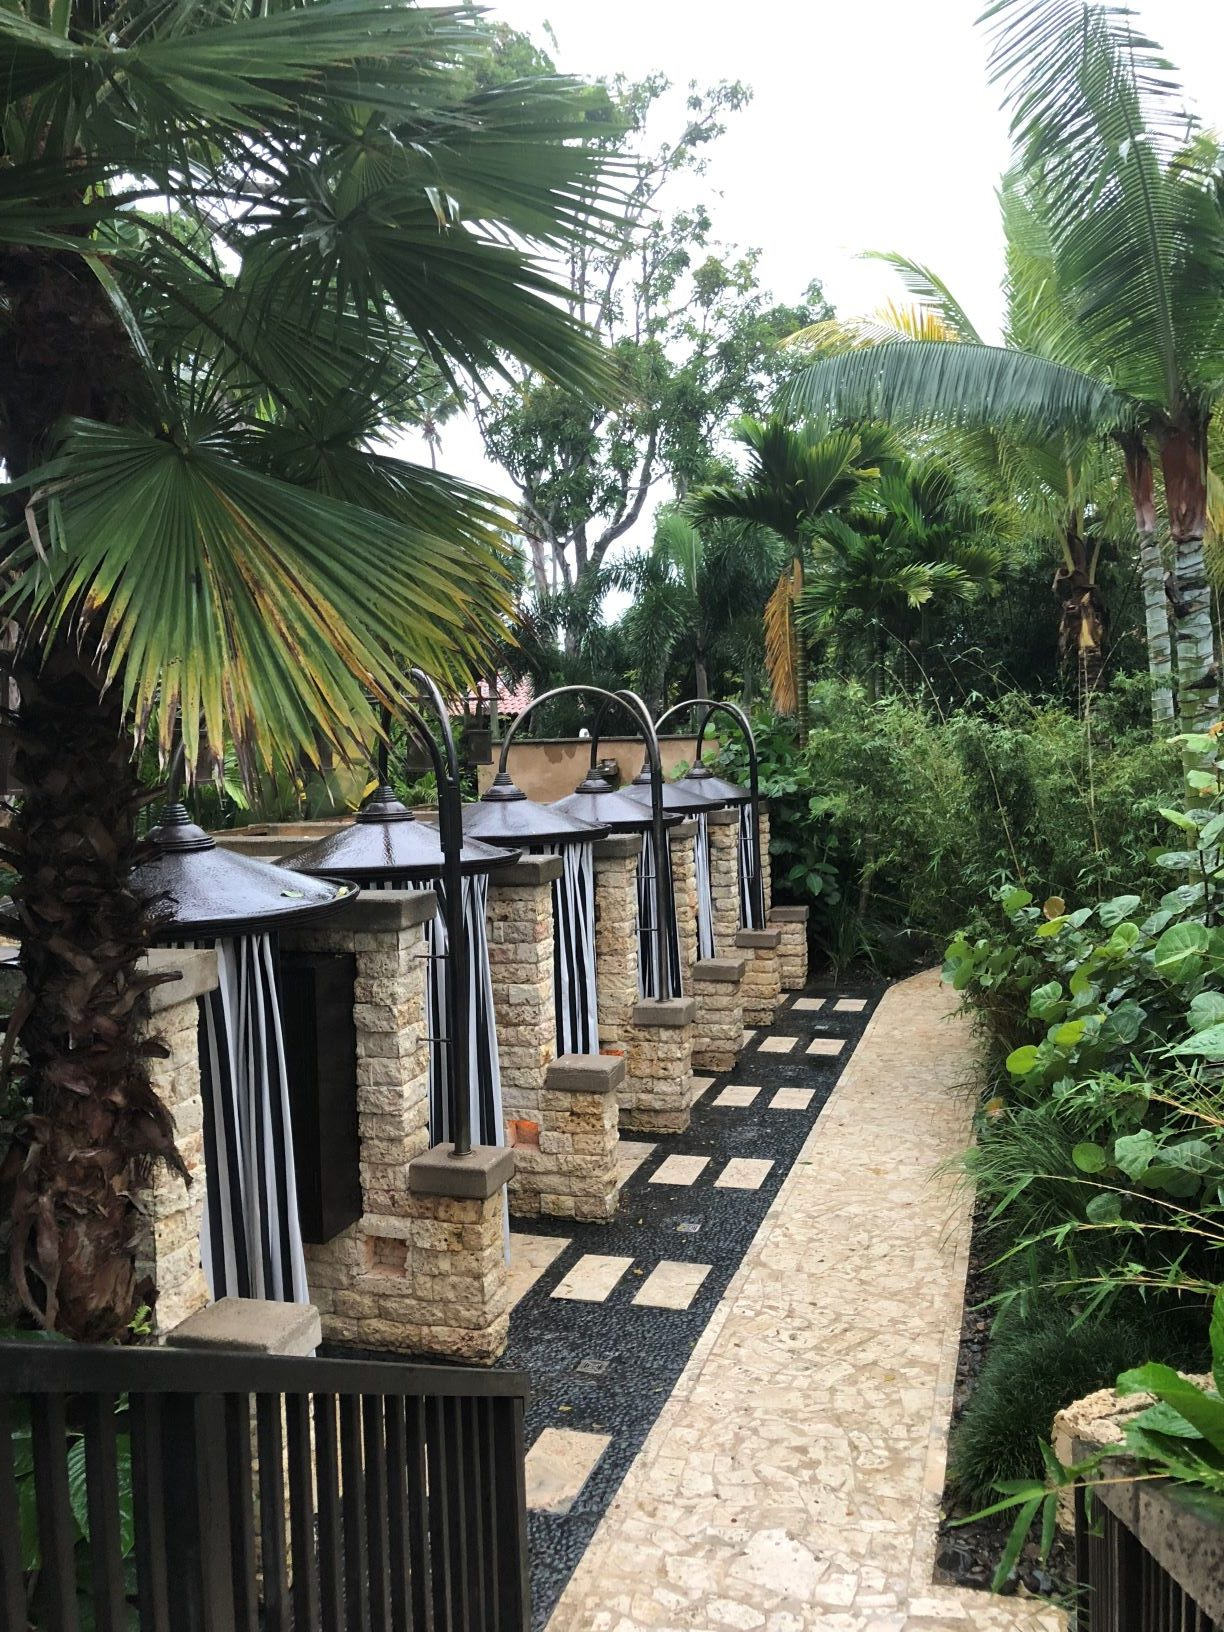 Lush Tropical Spas Worth Traveling For – Travel Curator